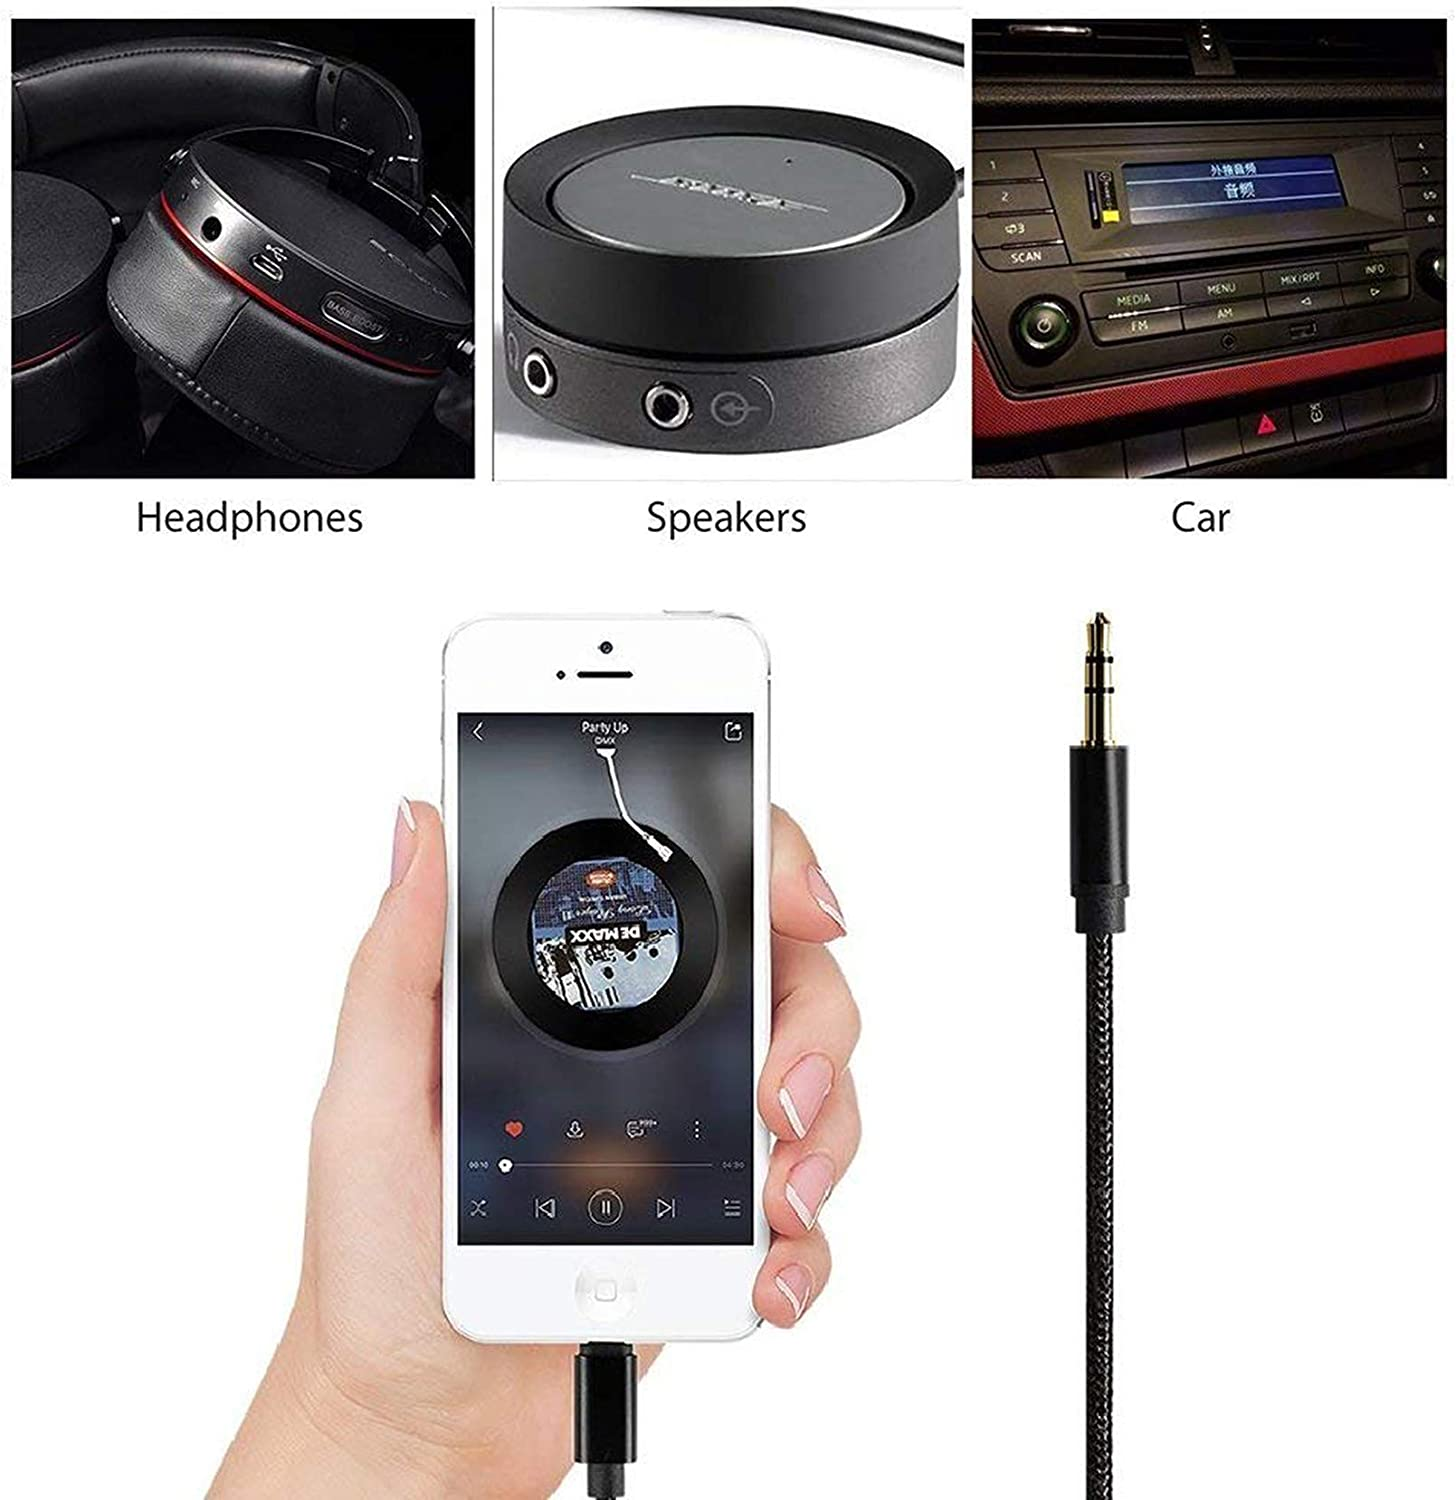 Upgraded Version Aux Cord for iPhone 8 for Car CHOOBY 3.5mm Aux Cable for Car for iPhone X//XR//XS Max//11//11 Pro to Car Stereo Speaker or Headphone Adapter Support iOS 12 Braided Black